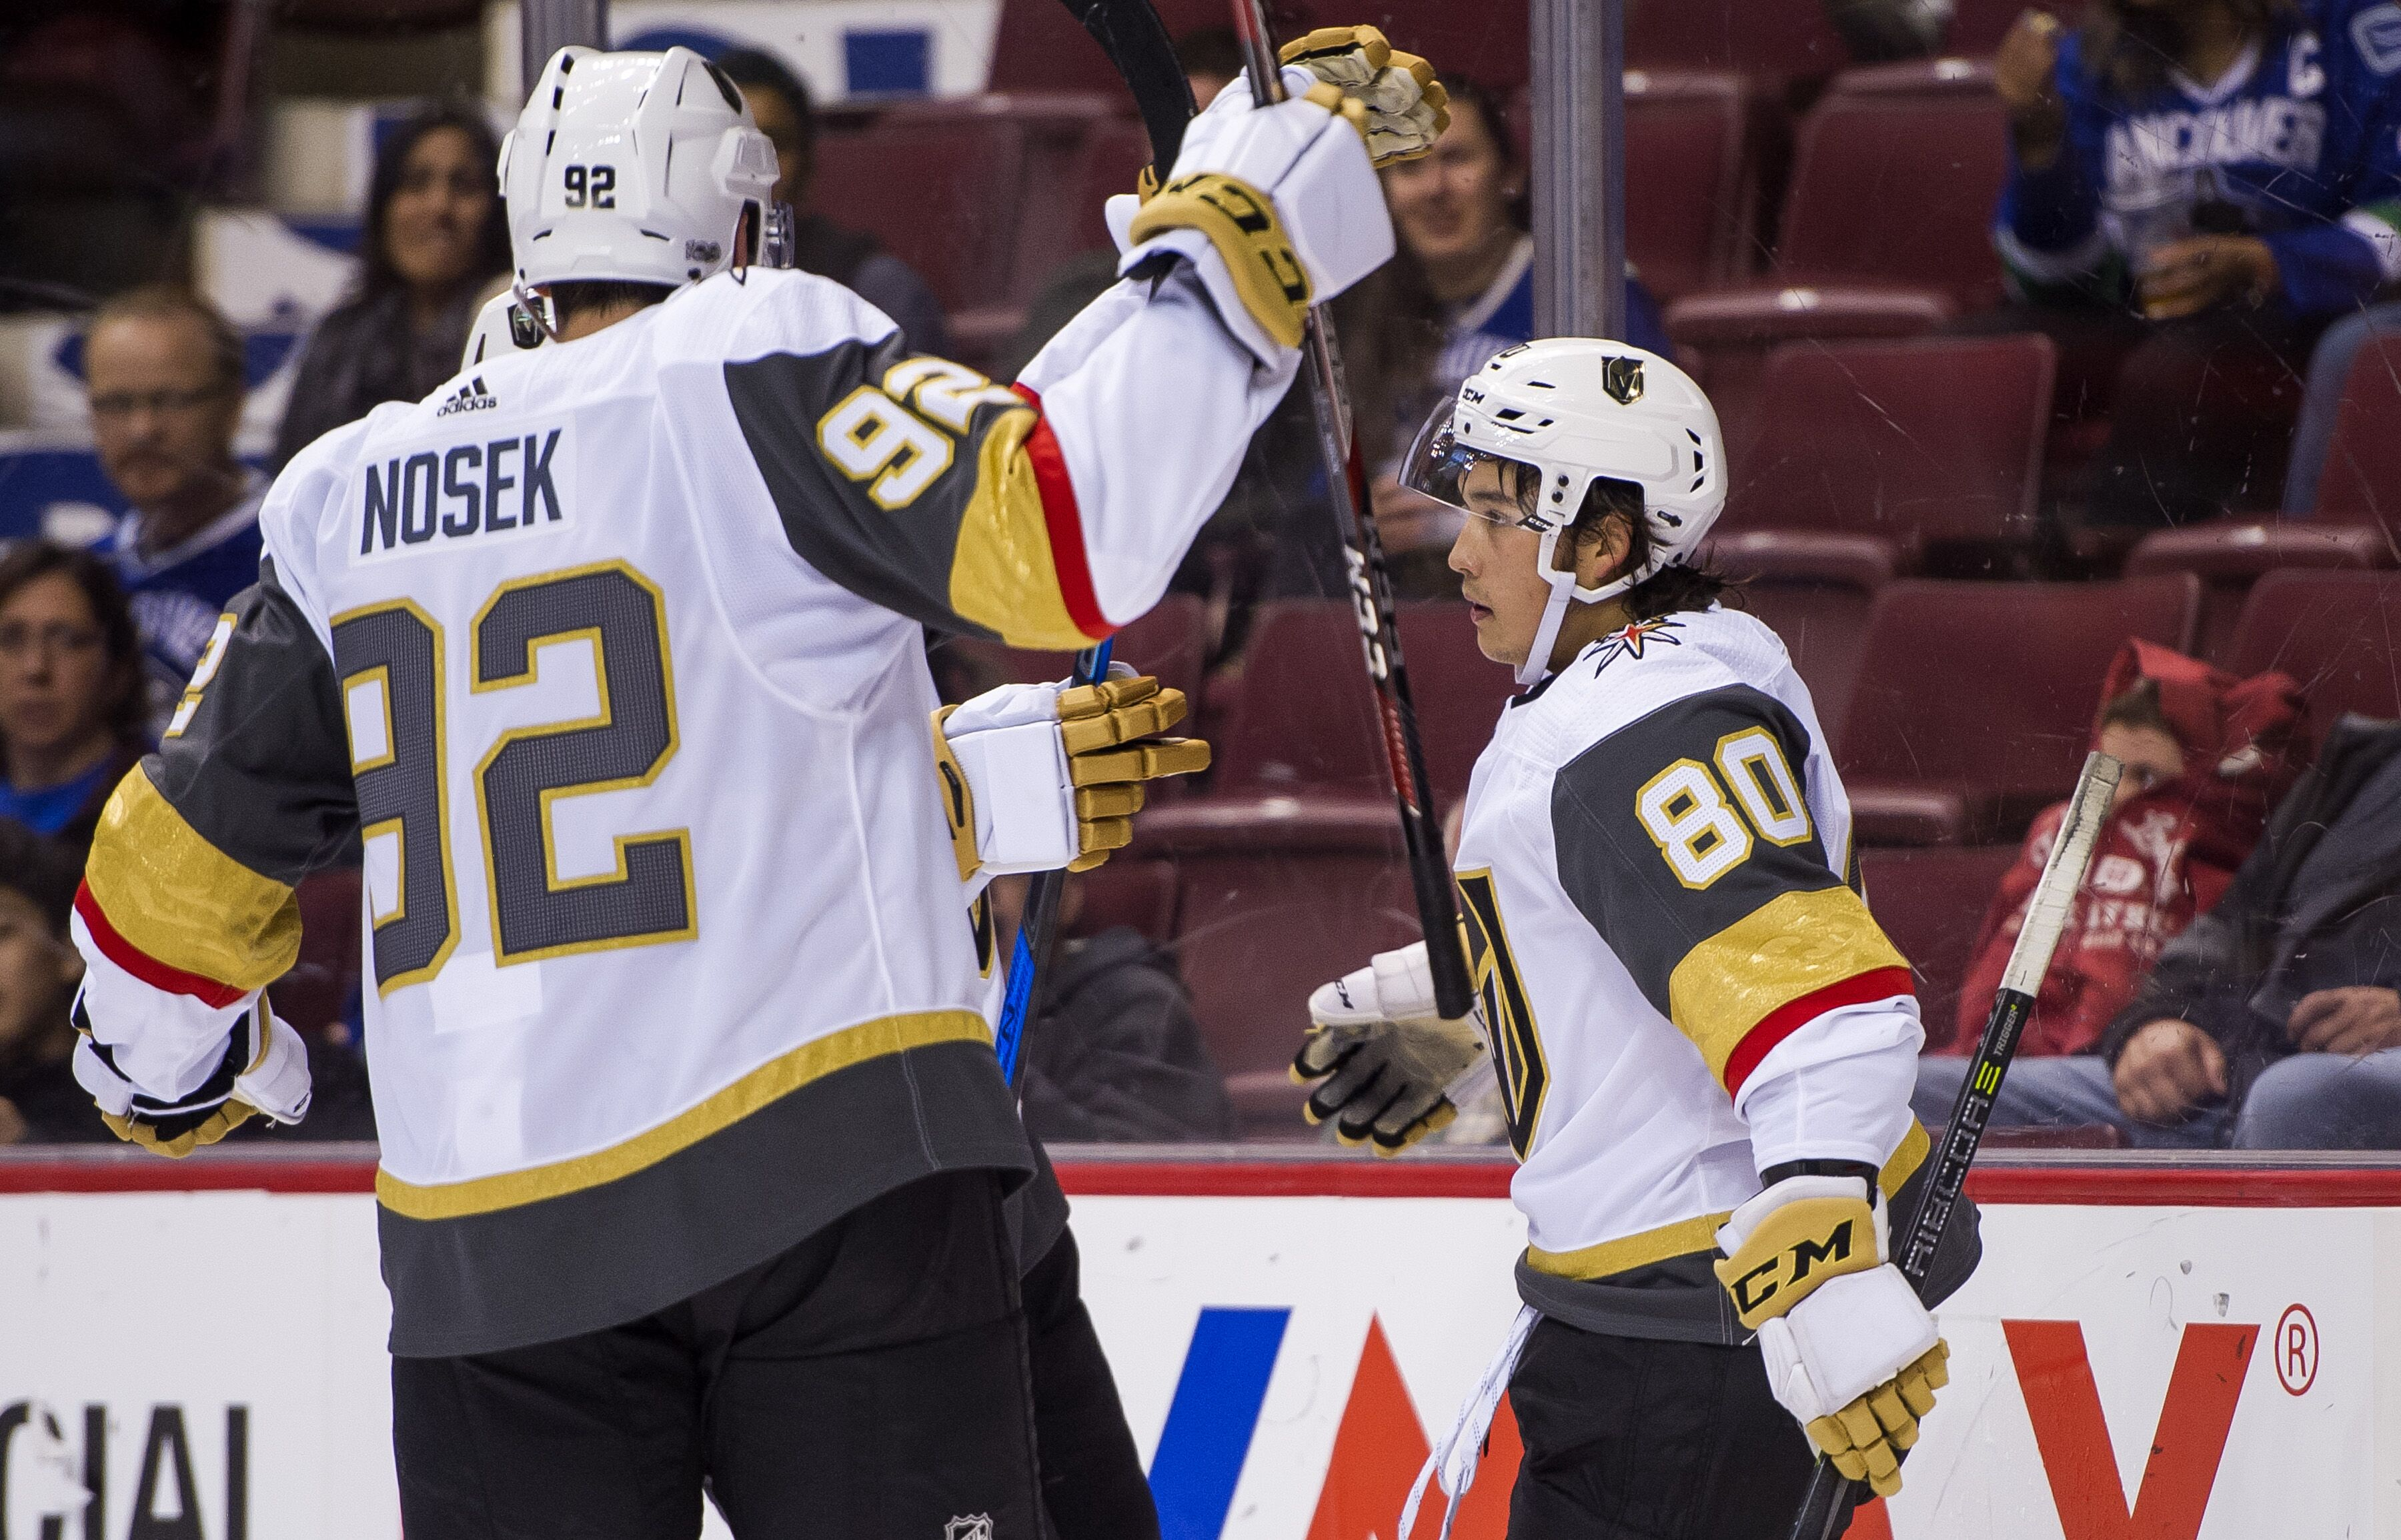 Golden Knights Vs Canucks News: Vegas Golden Knights Dominant In First Two Preseason Games